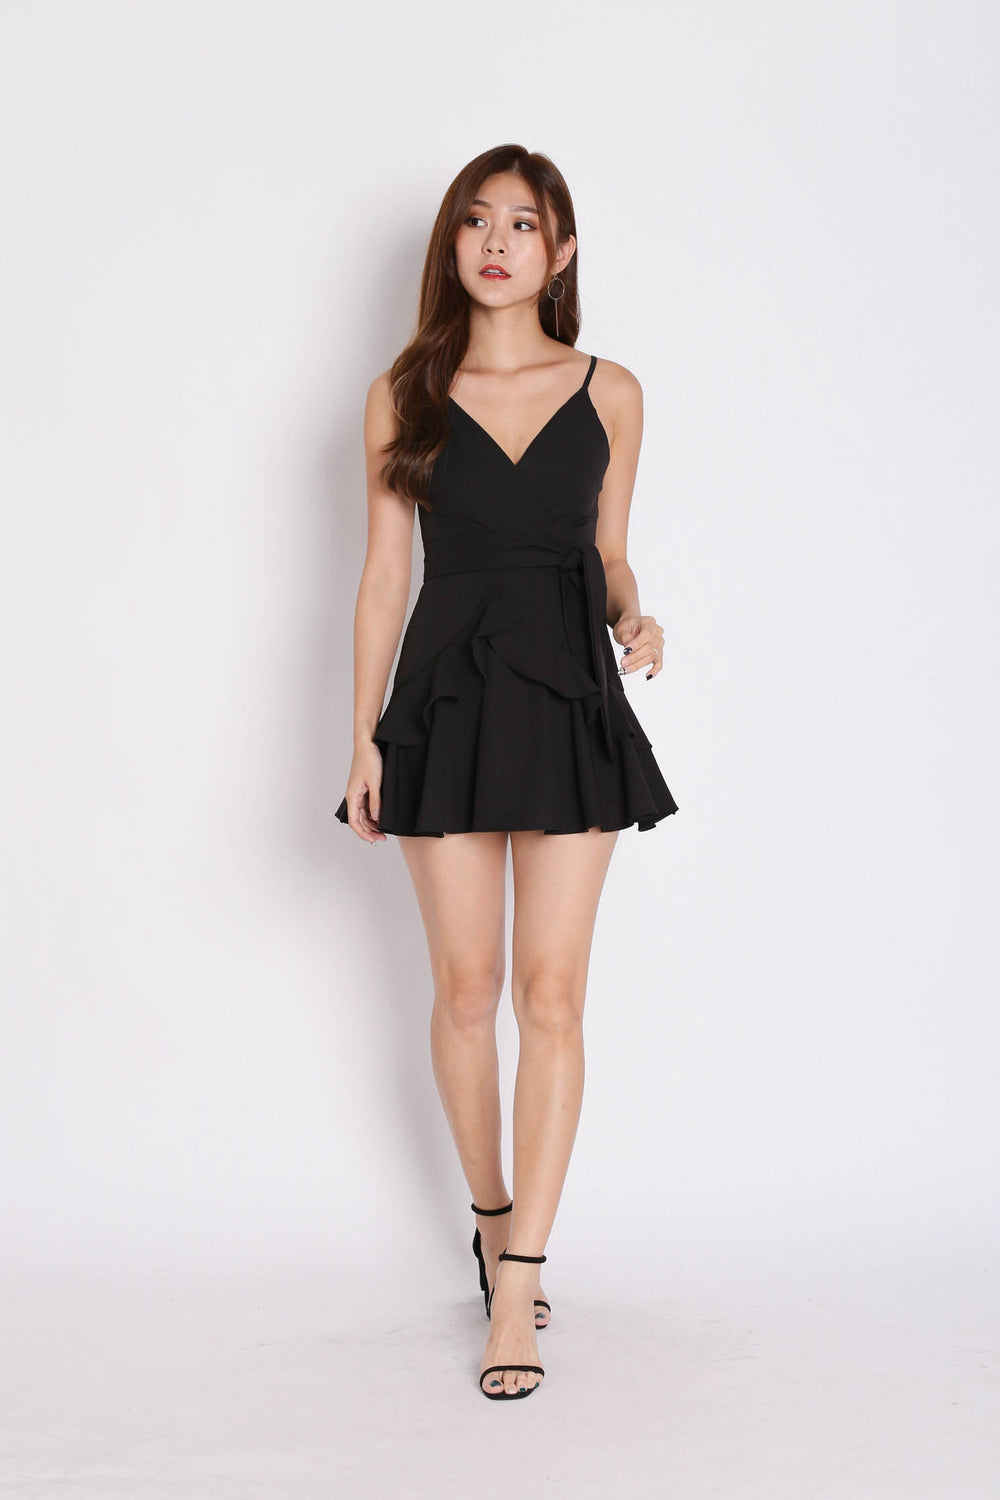 *TPZ* (PREMIUM) SAGE RUFFLES DRESS ROMPER IN BLACK